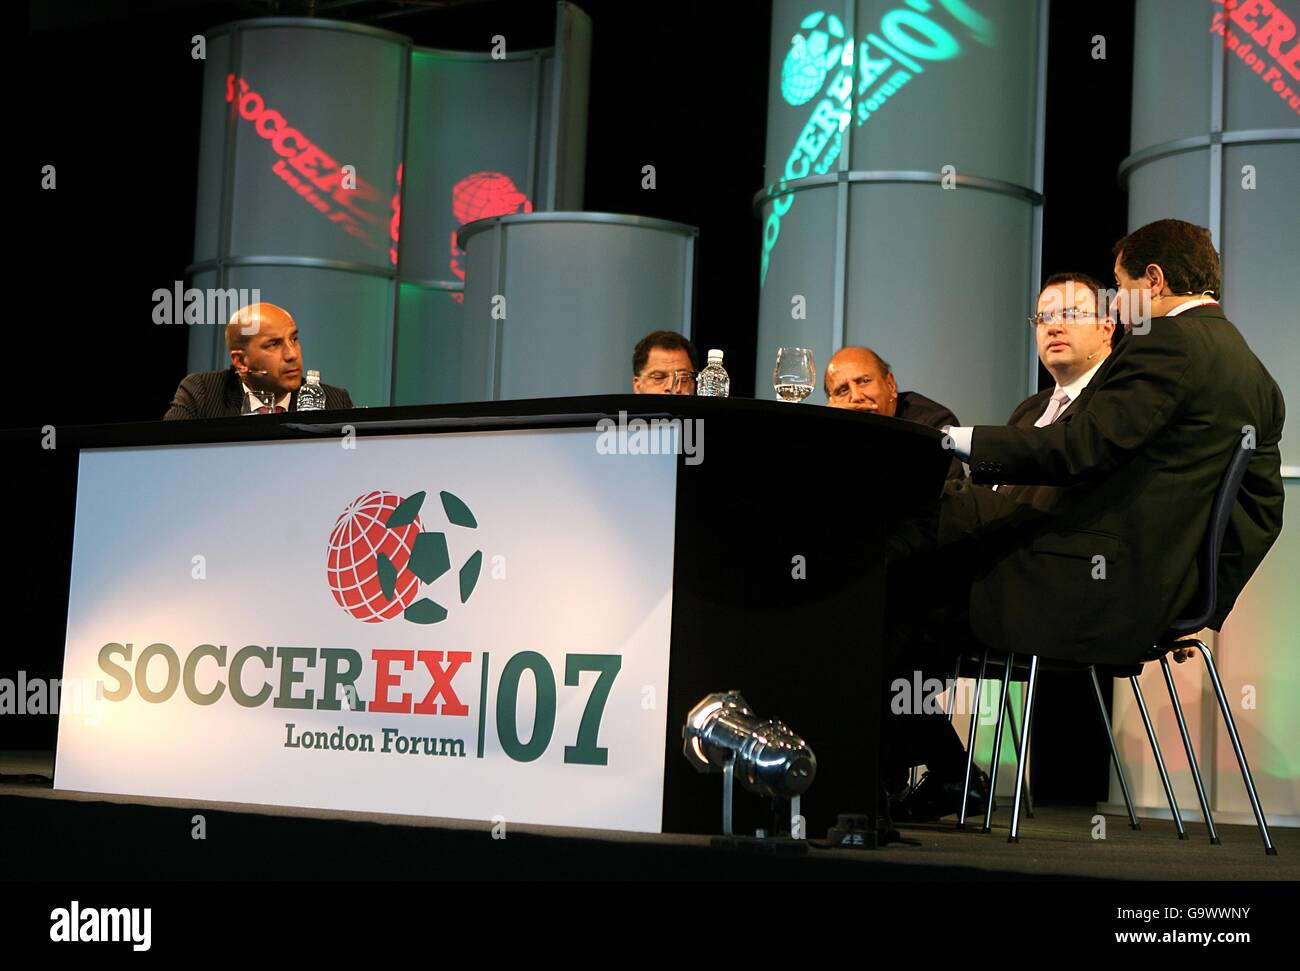 Soccerex London Forum - Wembley Stadium Stock Photo